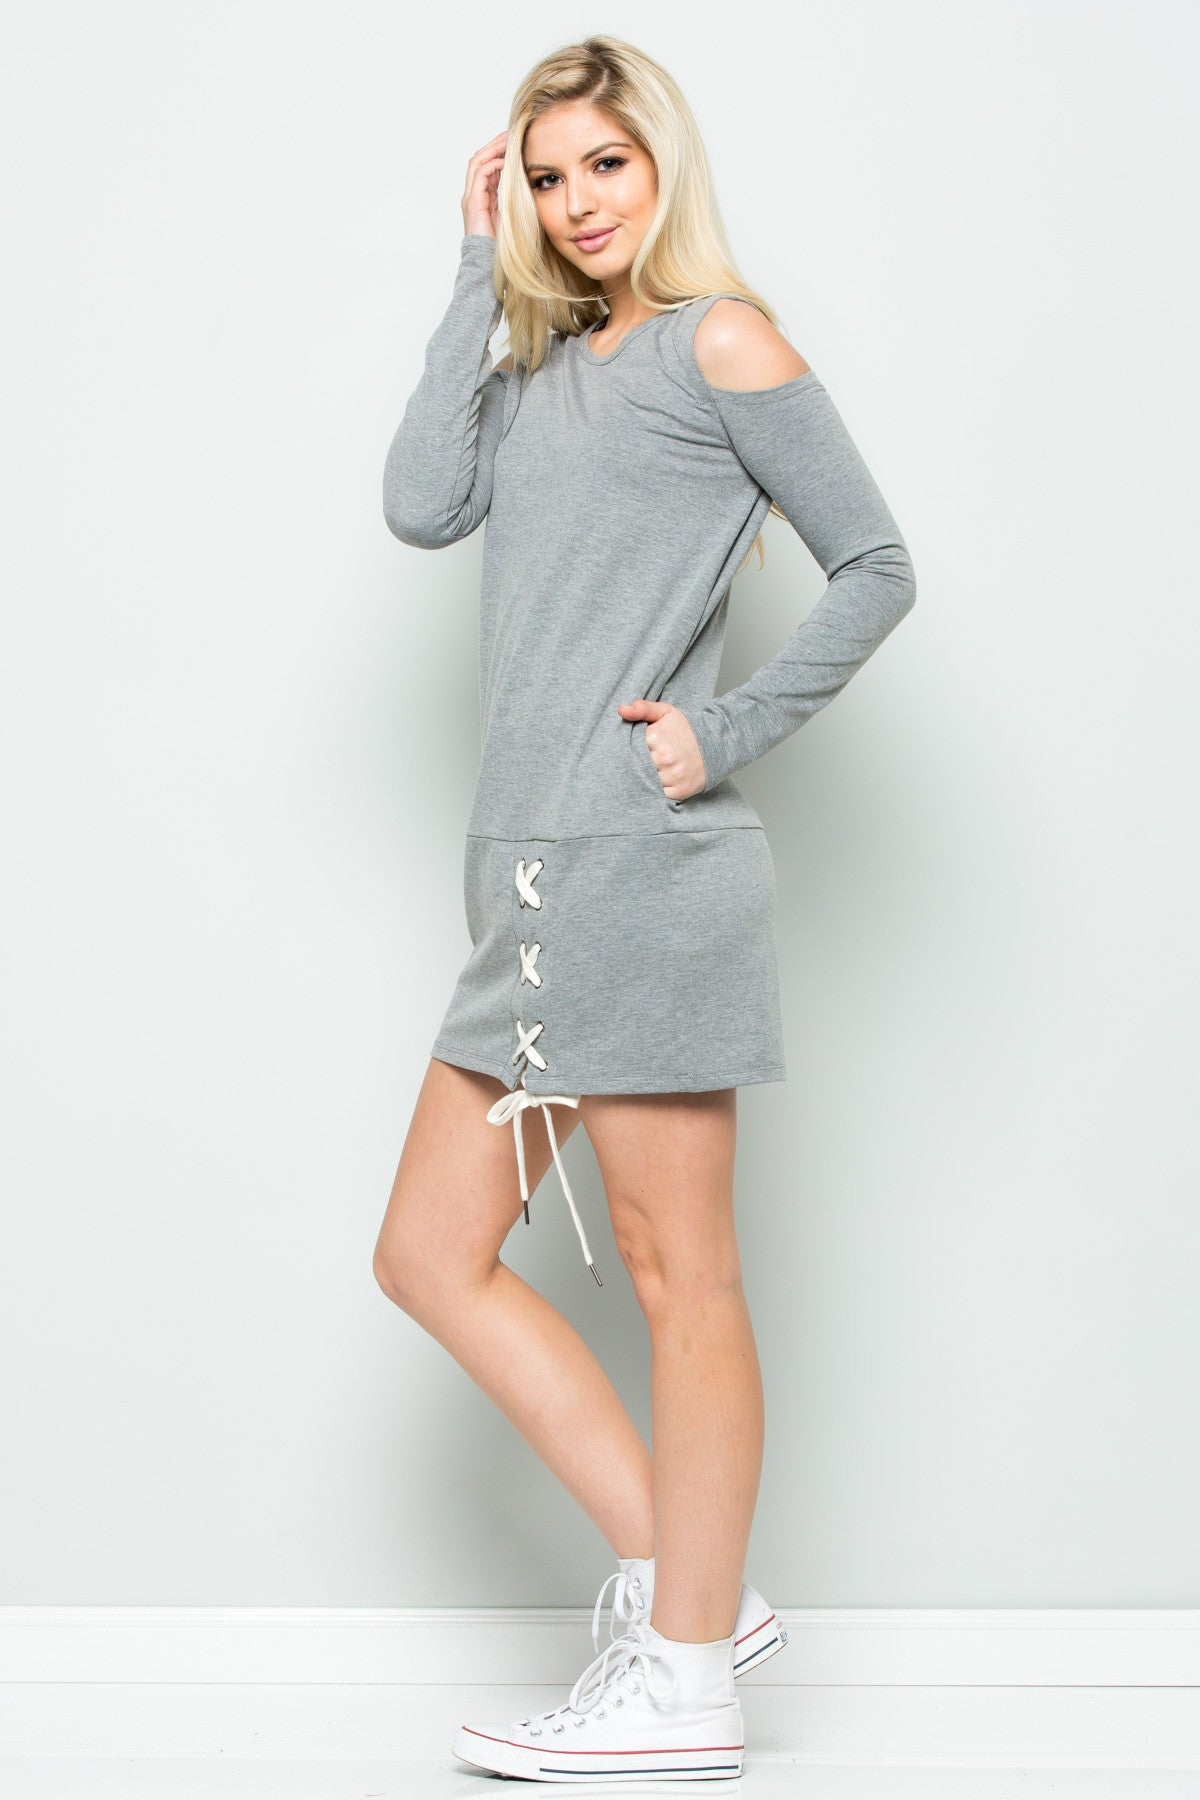 Cold Shoulder Lace Up Sweater Dress in Heather Grey - Dresses - My Yuccie - 6